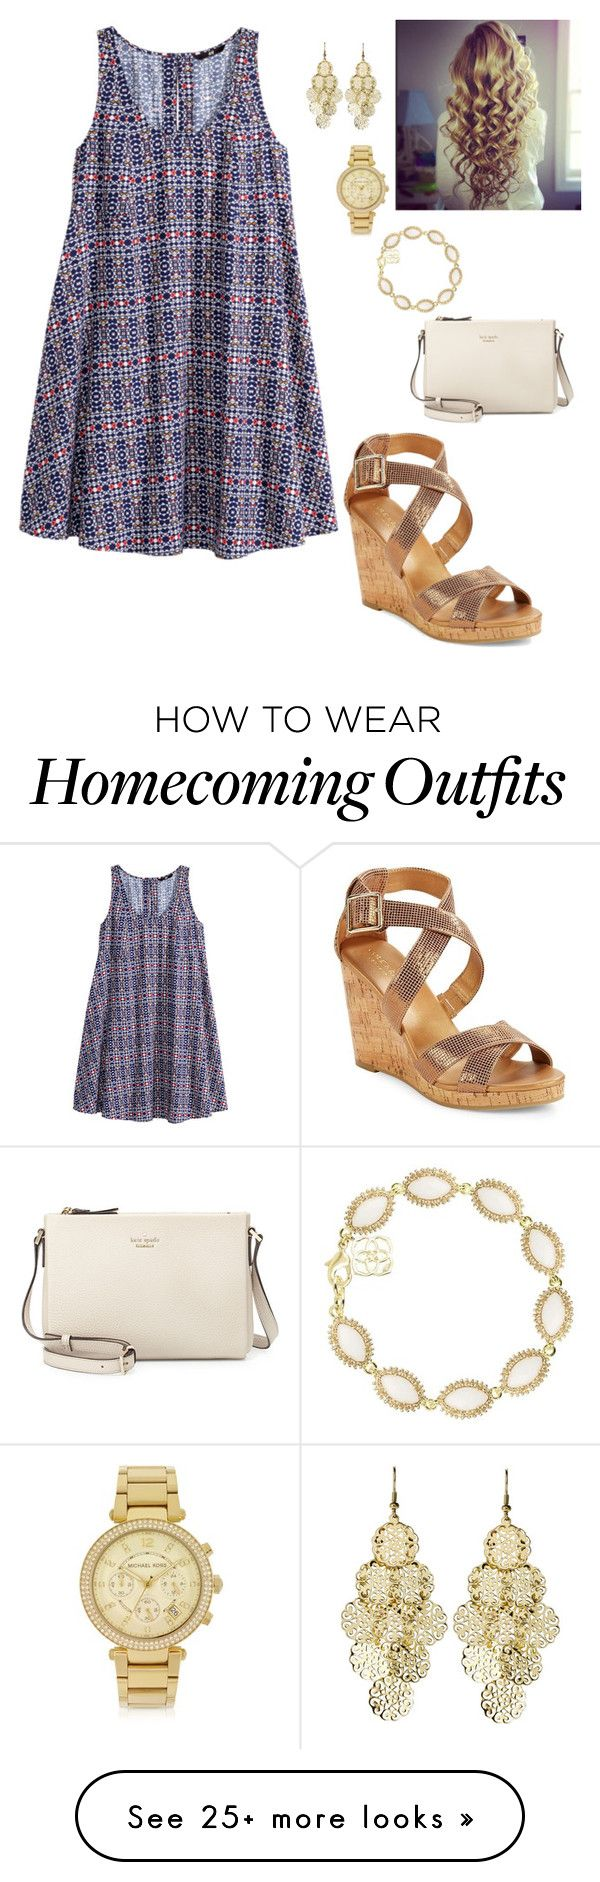 """Homecoming day 3: Stay Classy Wednesday"" by swwbama on Polyvore featuring H&M, Cole Haan, Alexia Crawford, Michael Kors, Kate Spade and Kendra Scott"